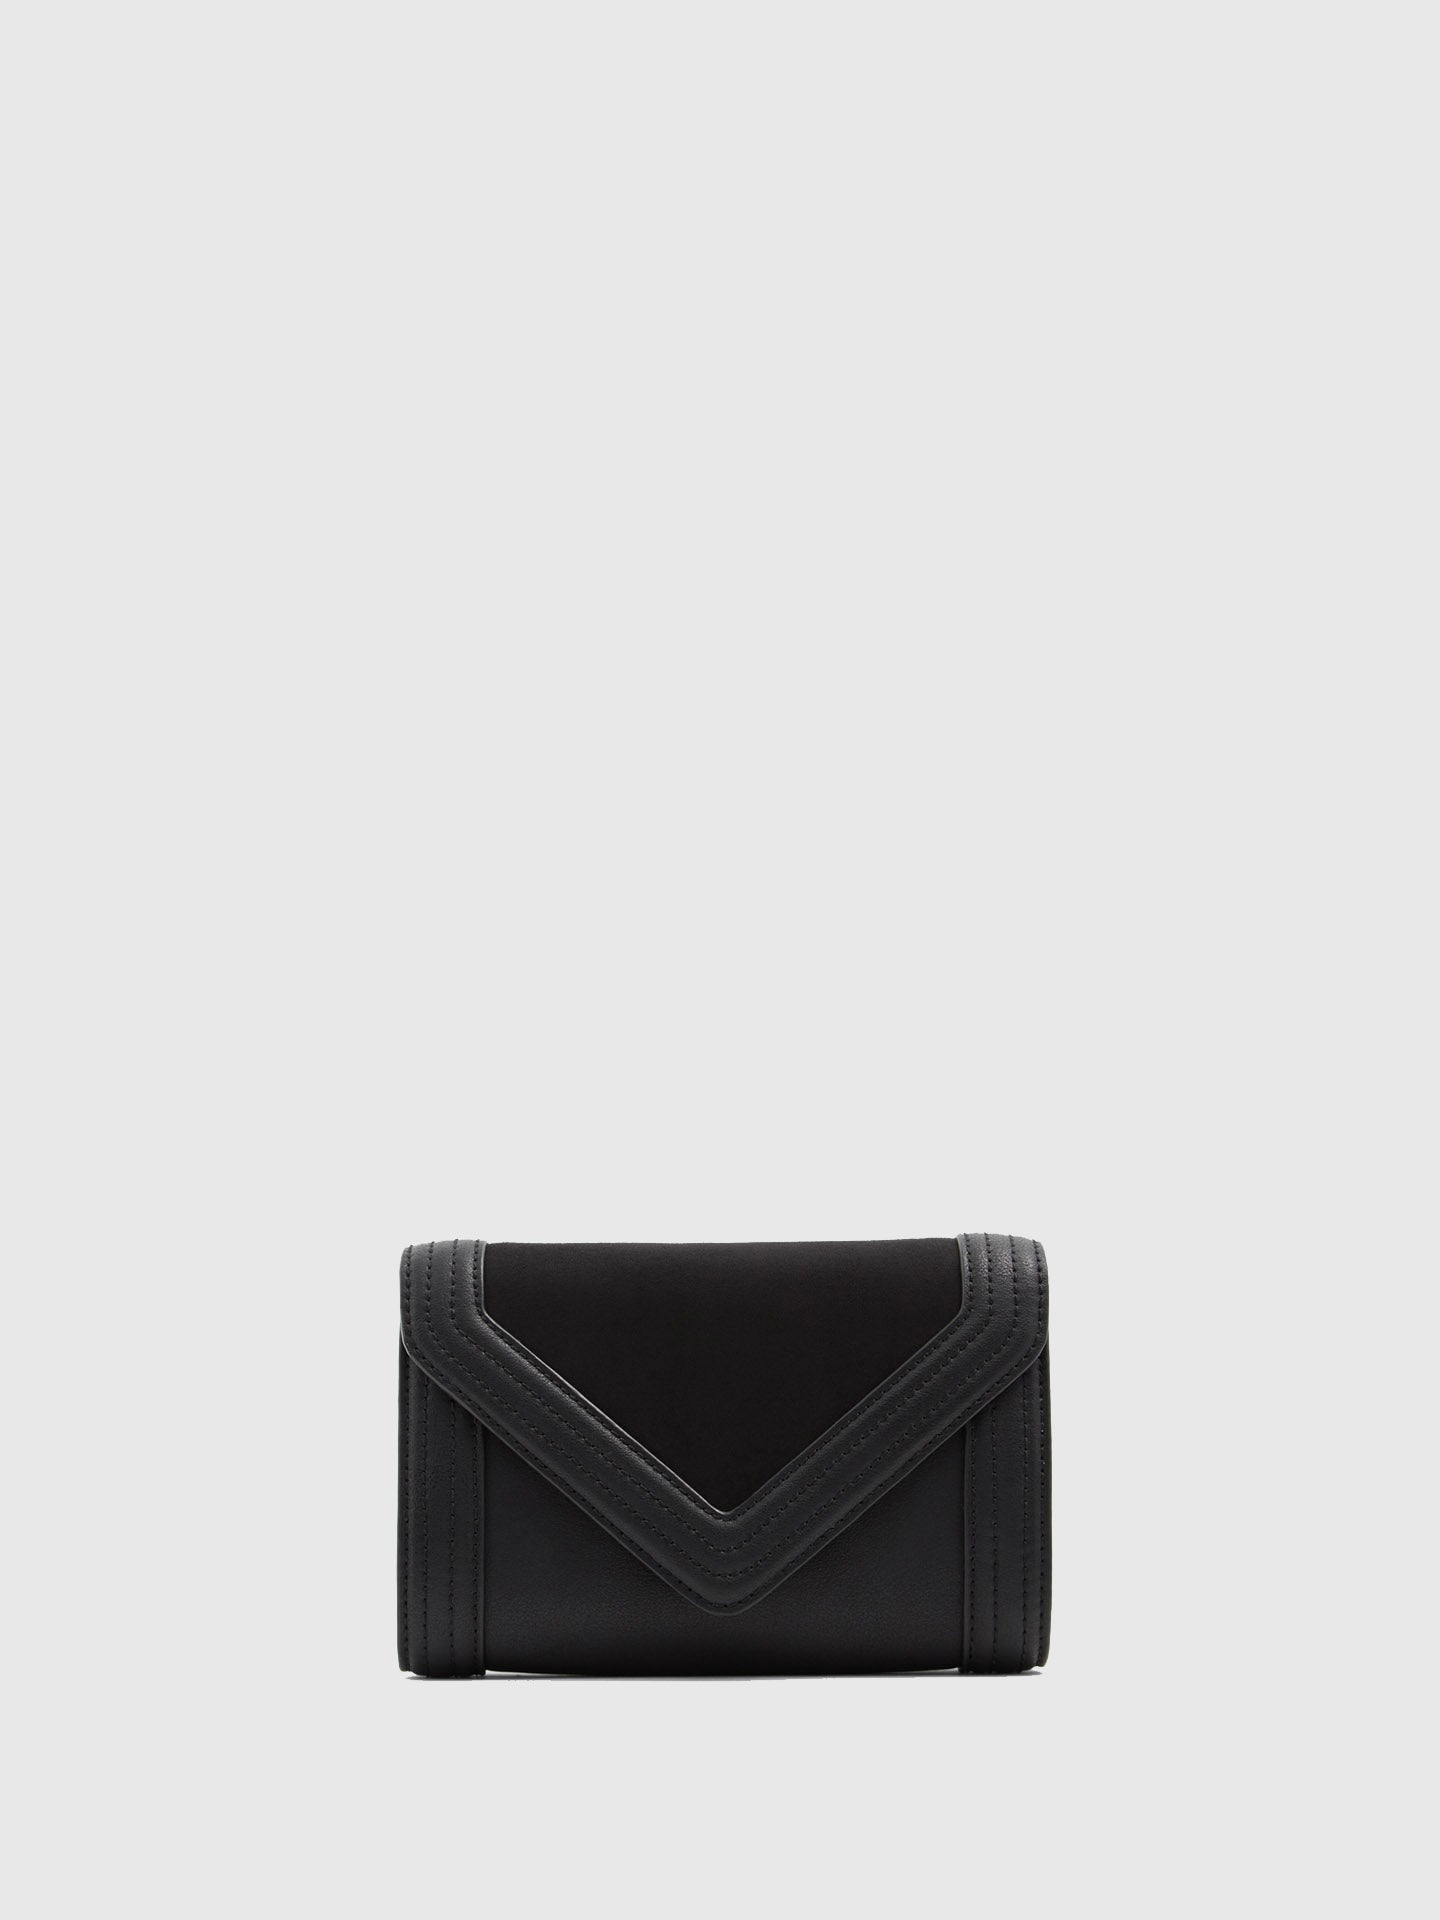 Aldo Clutch in Schwarz